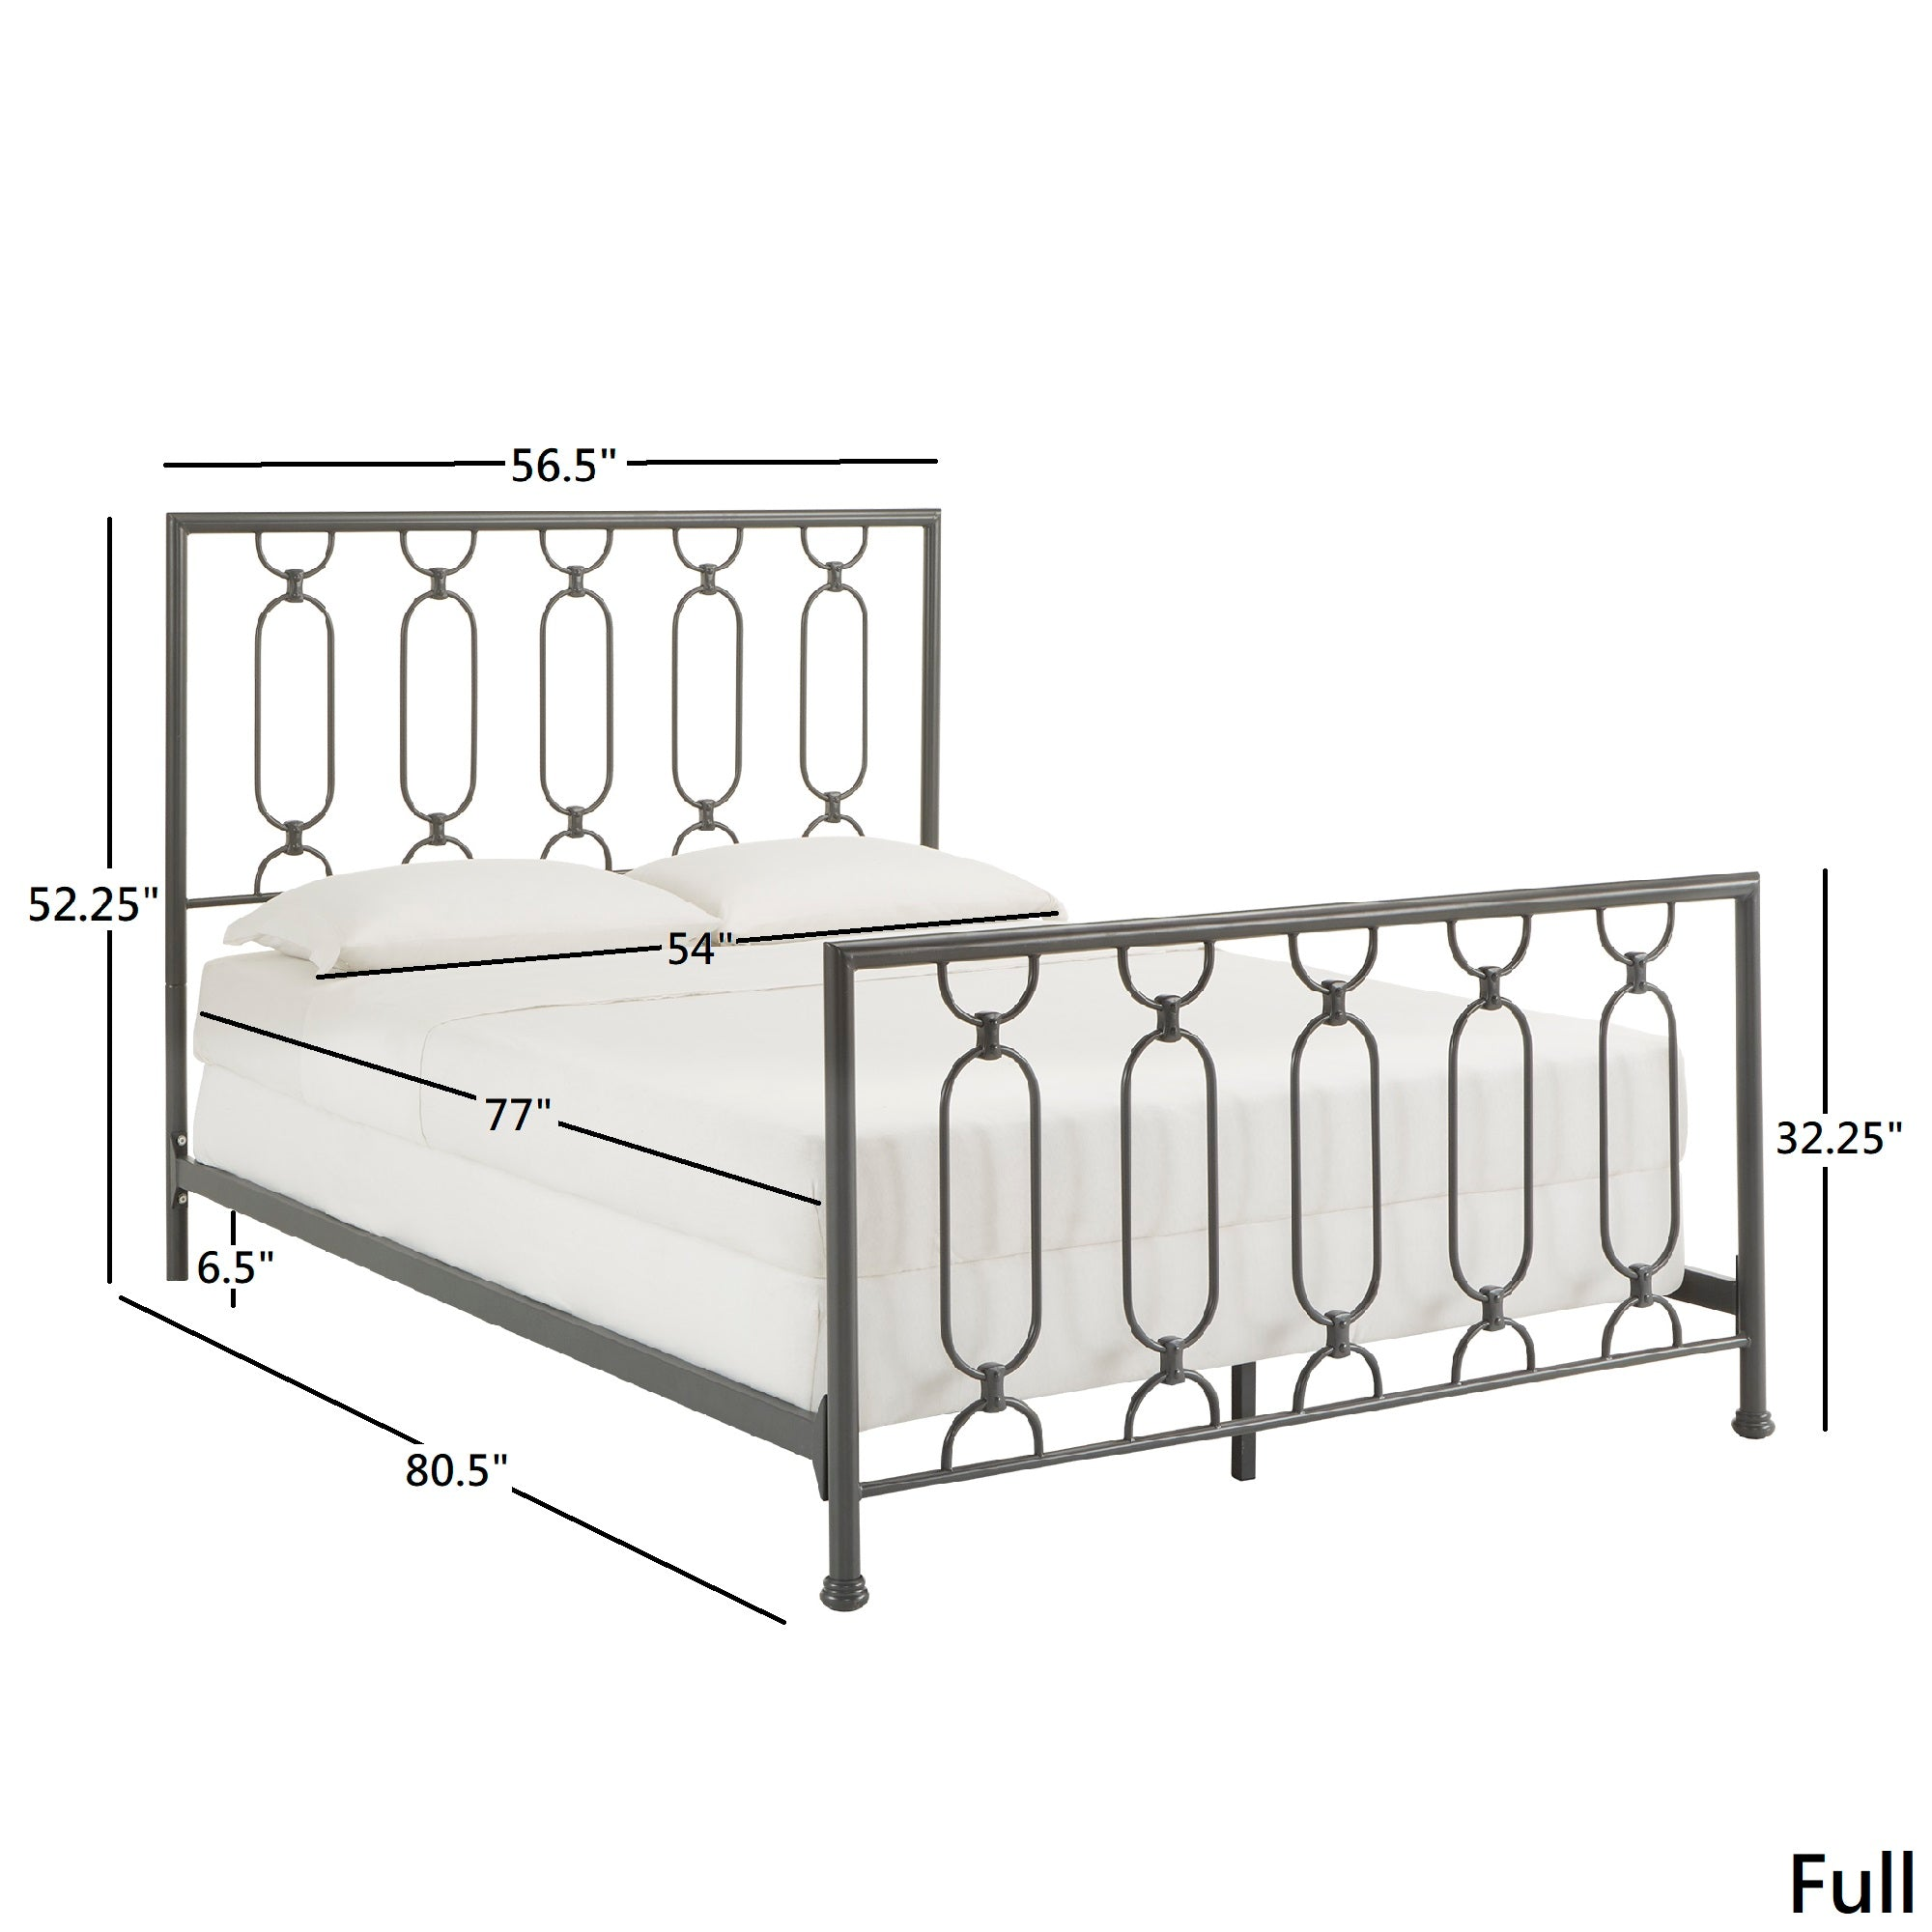 Metal Bed - Frost Grey, Full Size (Full Size)